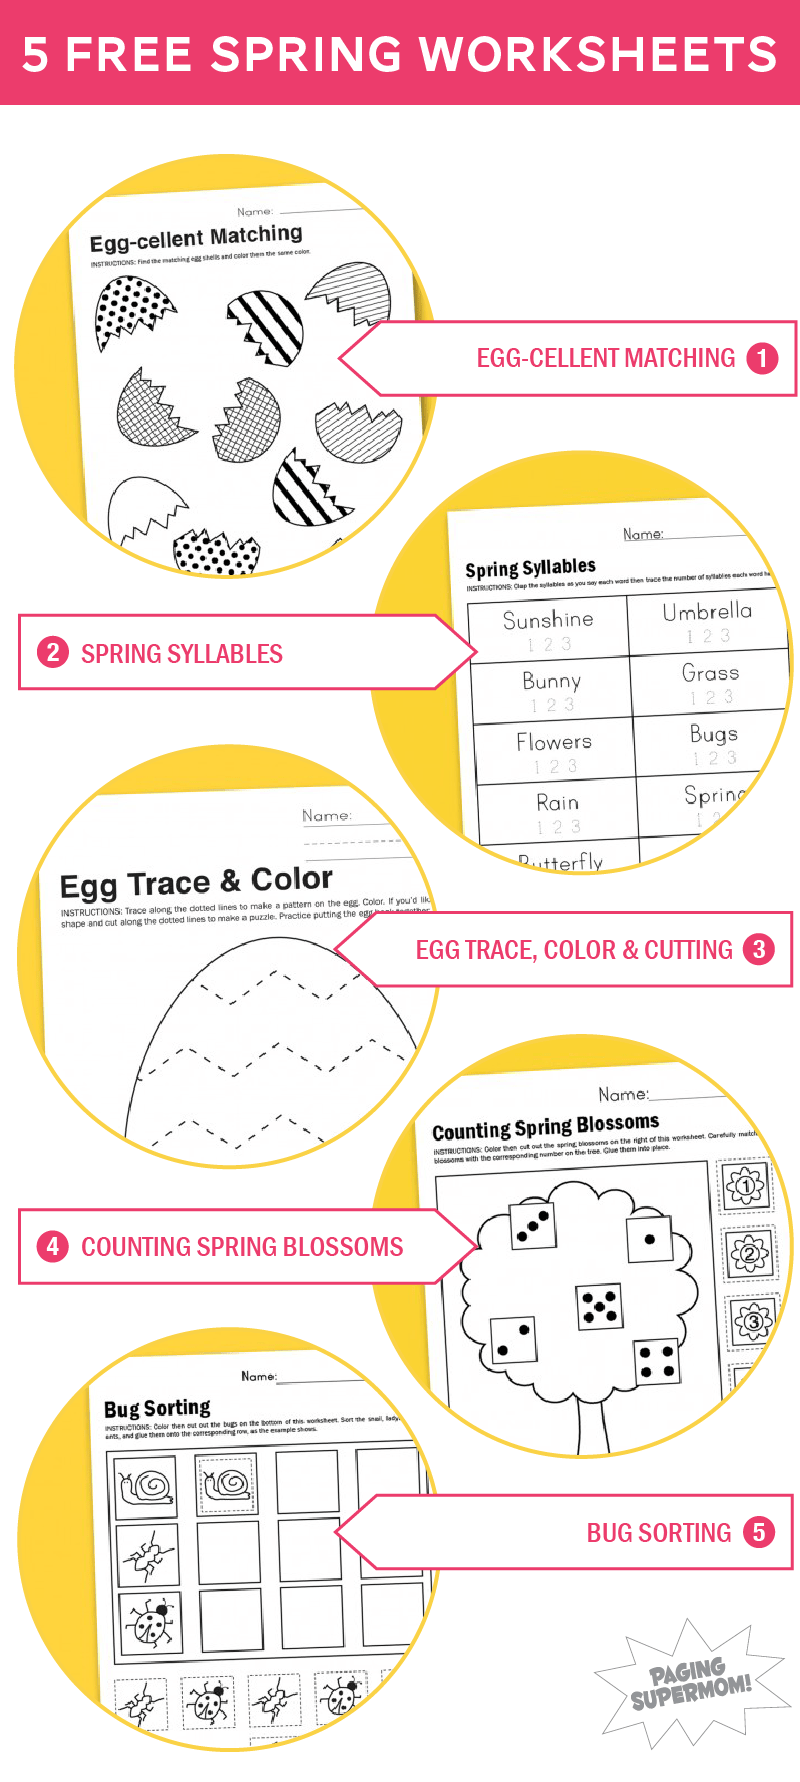 Free Printable Worksheets For Spring Paging Supermom